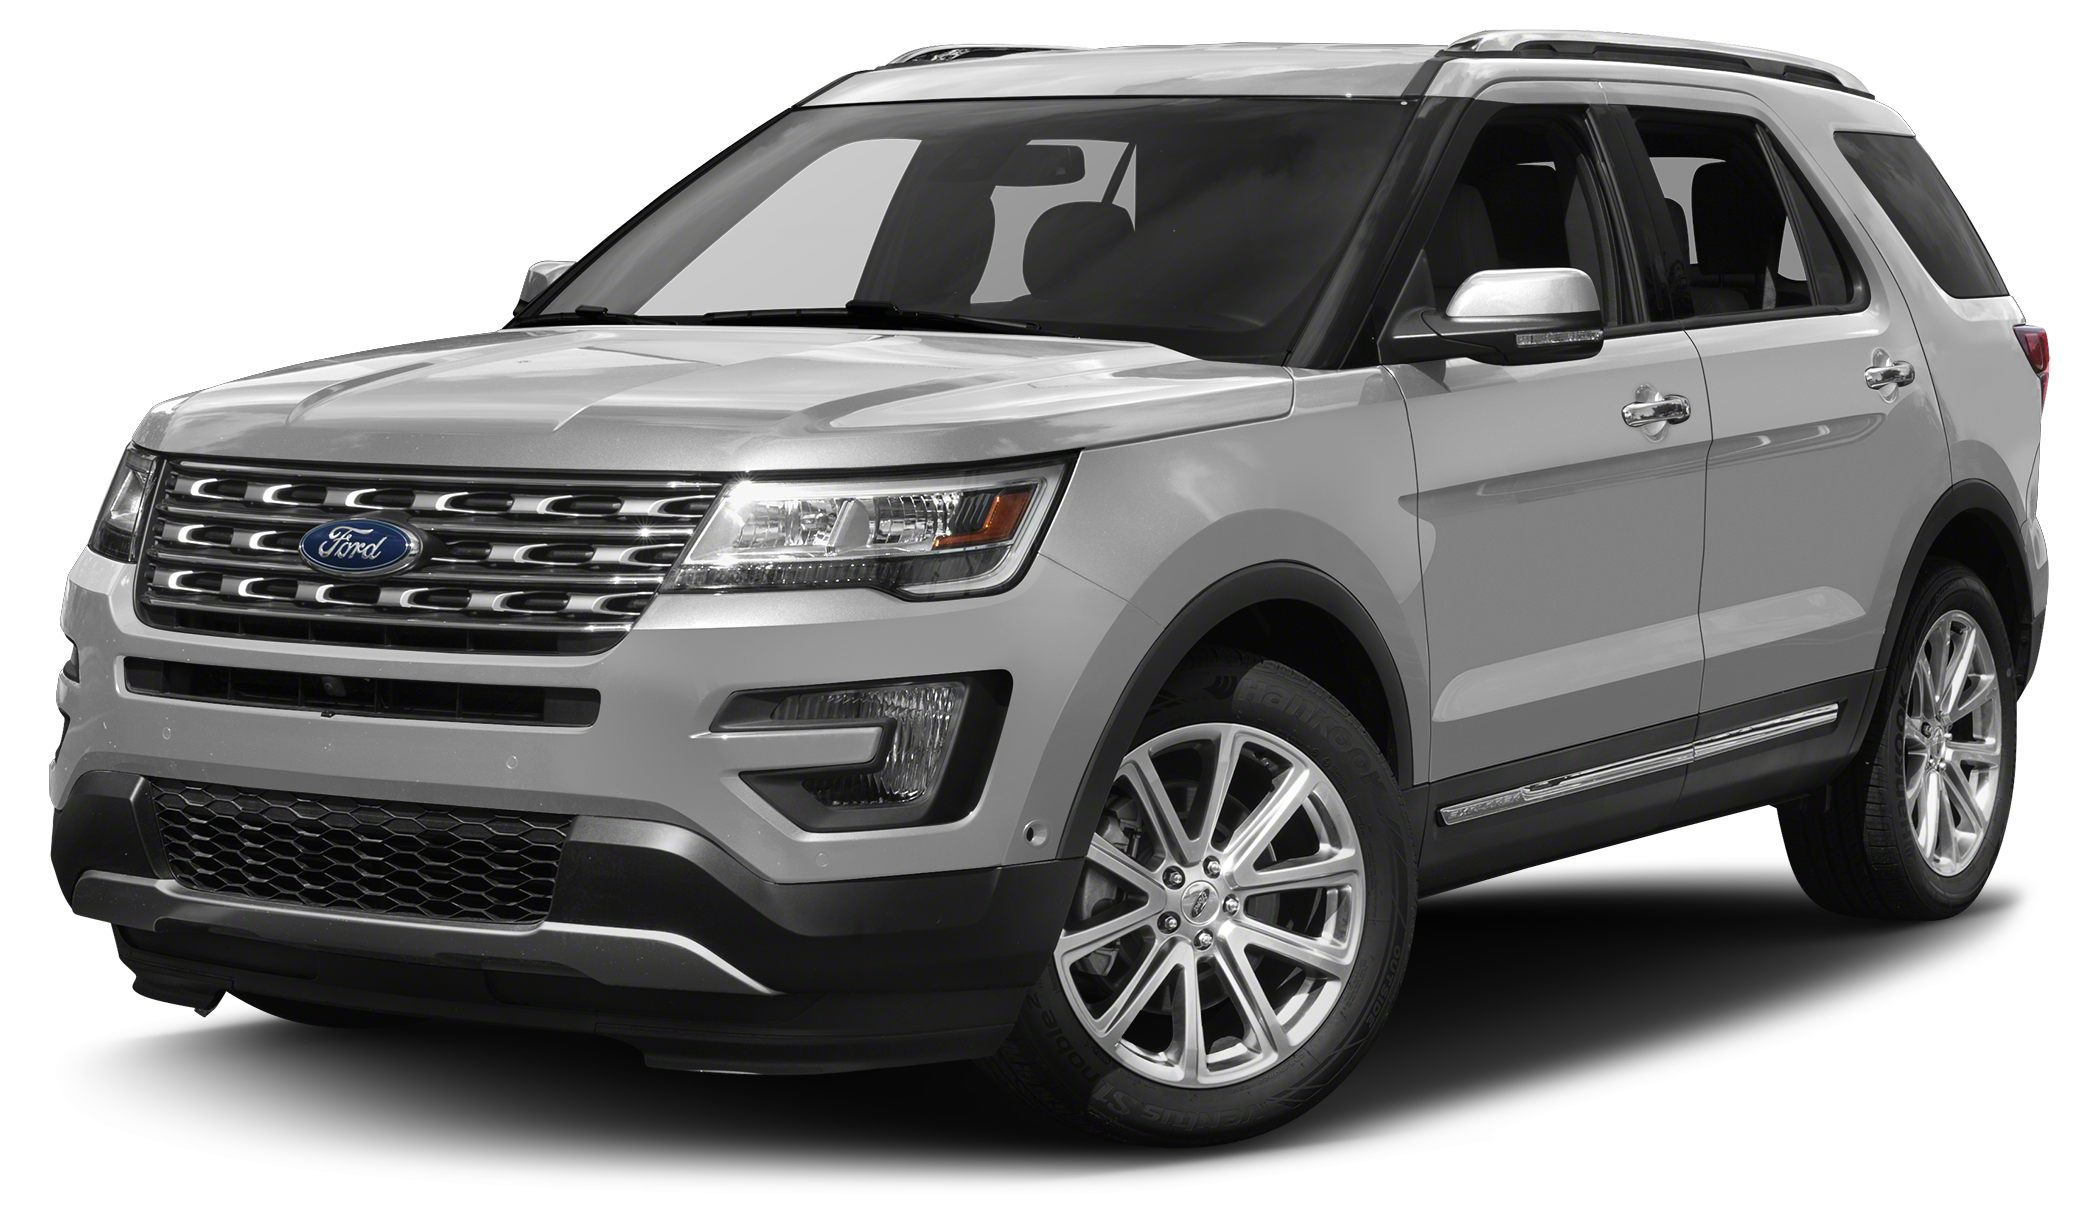 2016 Ford Explorer Limited The Ford Explorer has an updated interior and exterior for 2016 This L